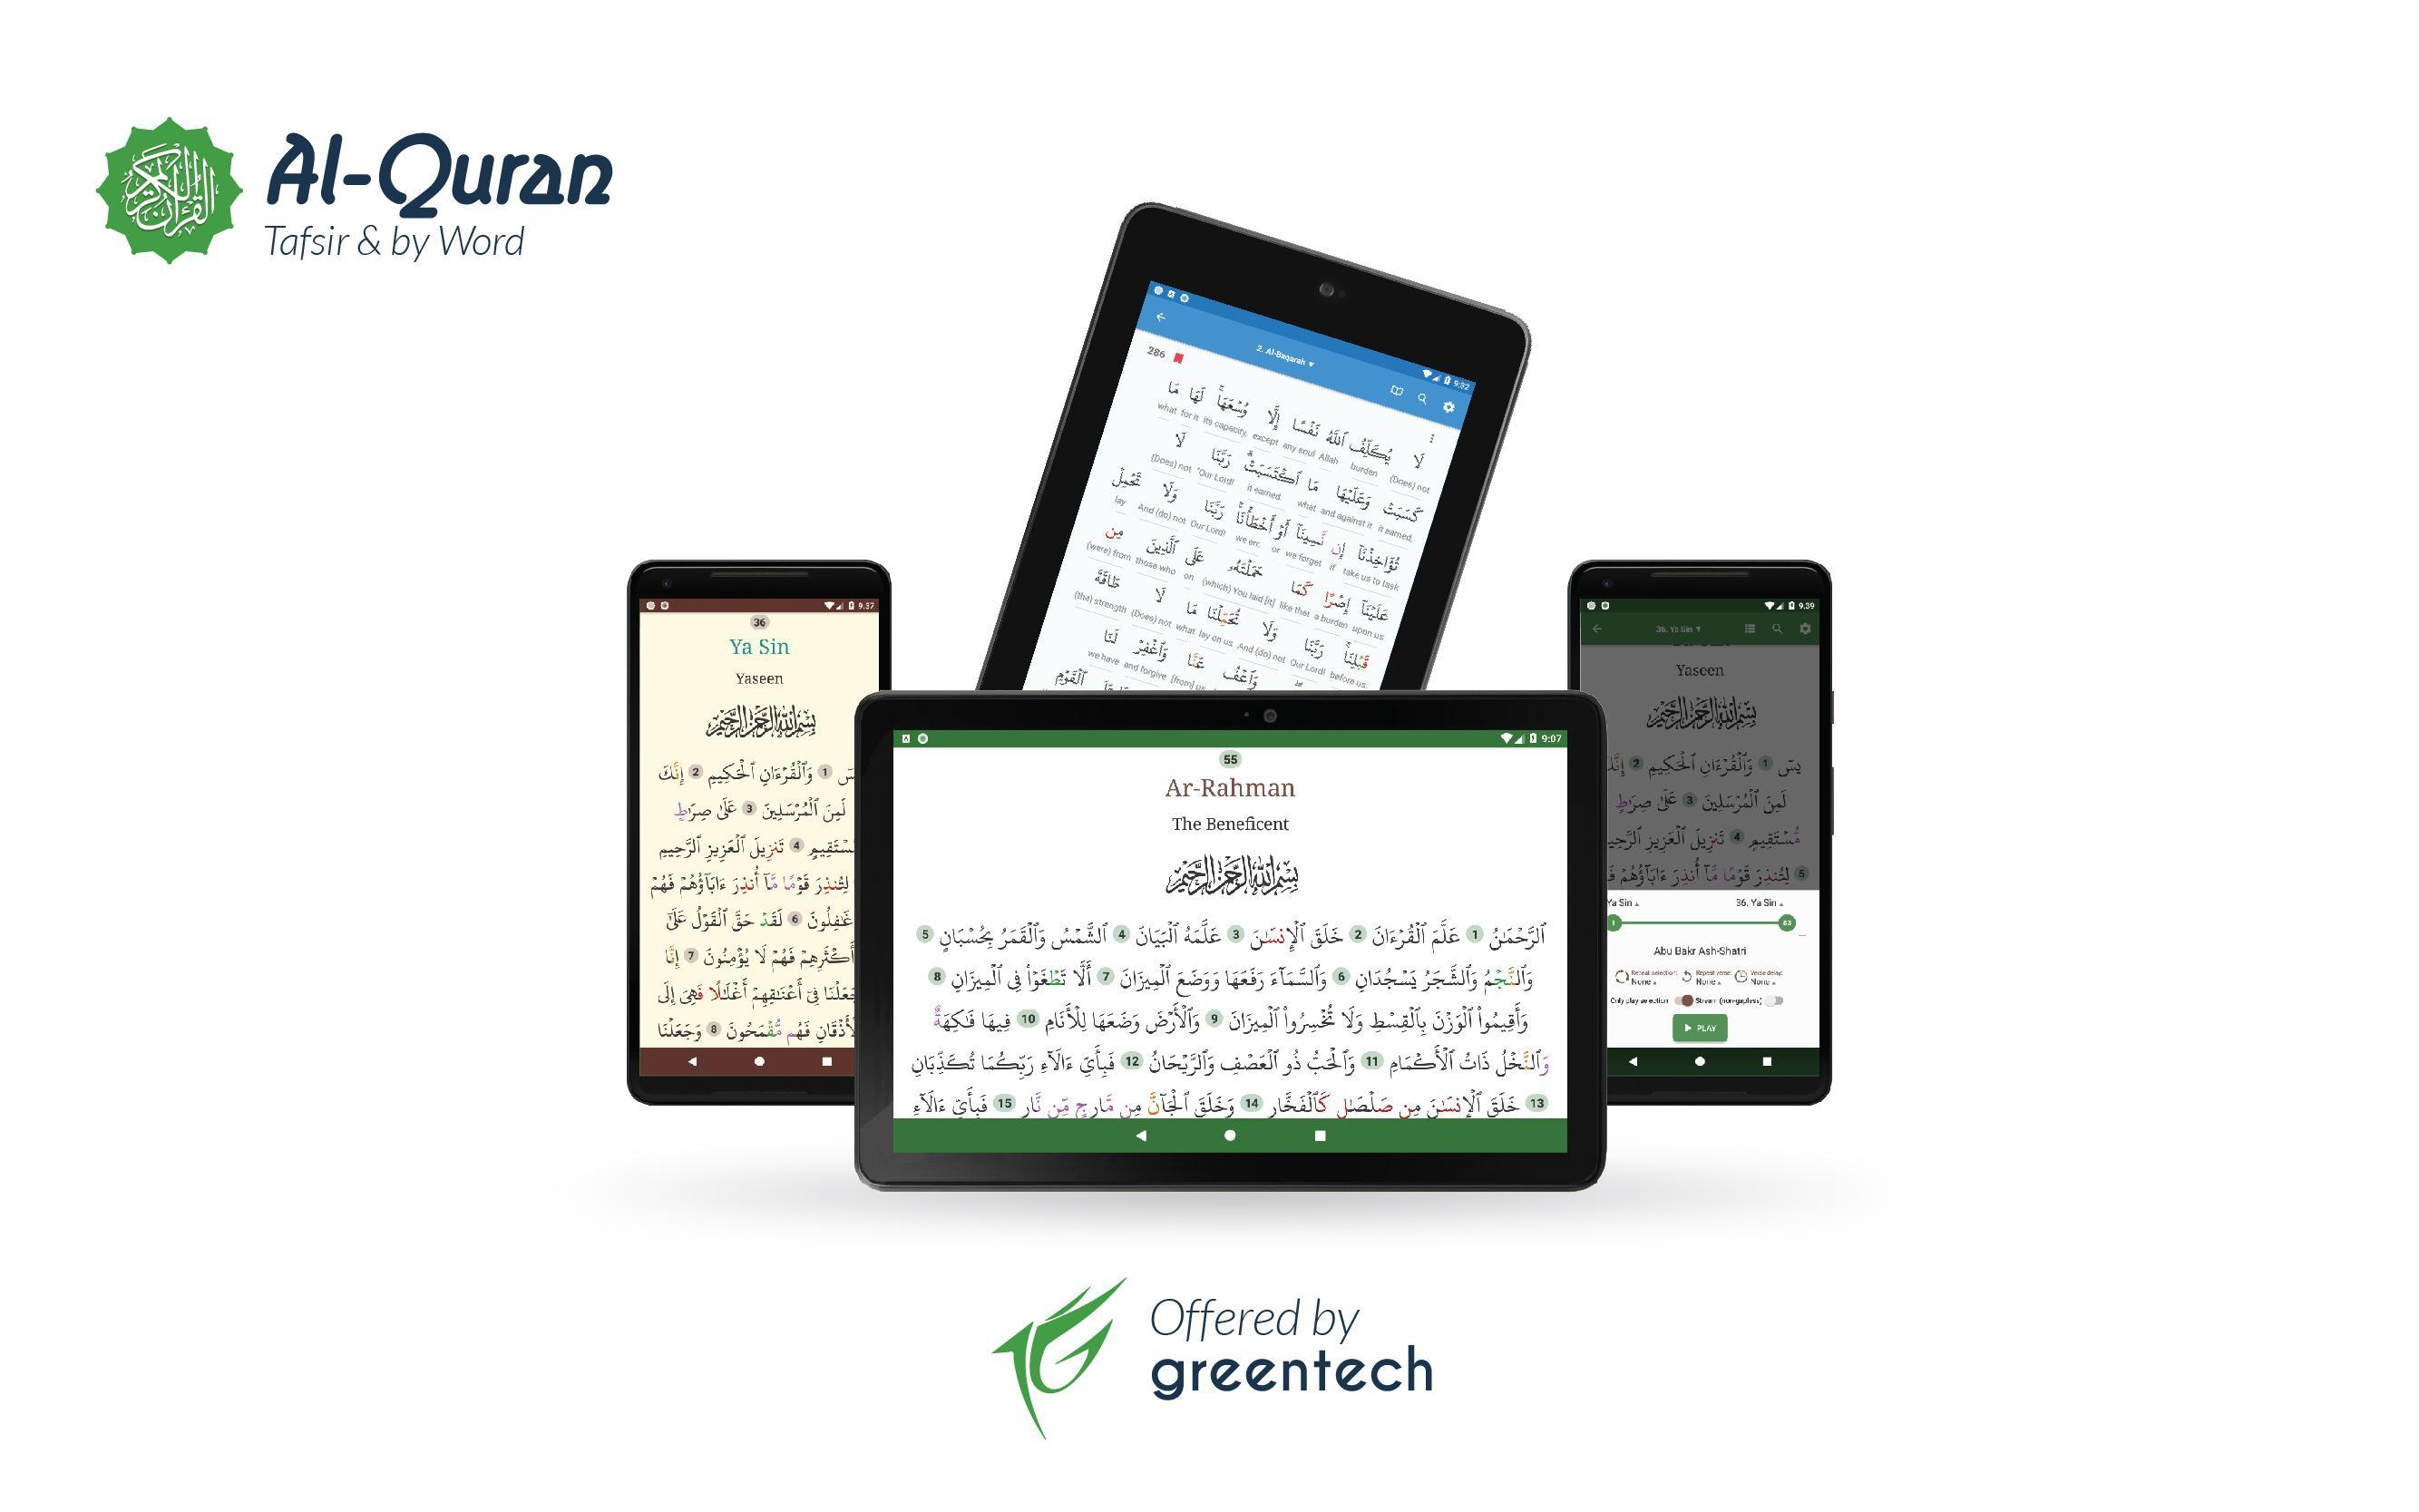 Al Quran (Tafsir & by Word) for Android - APK Download